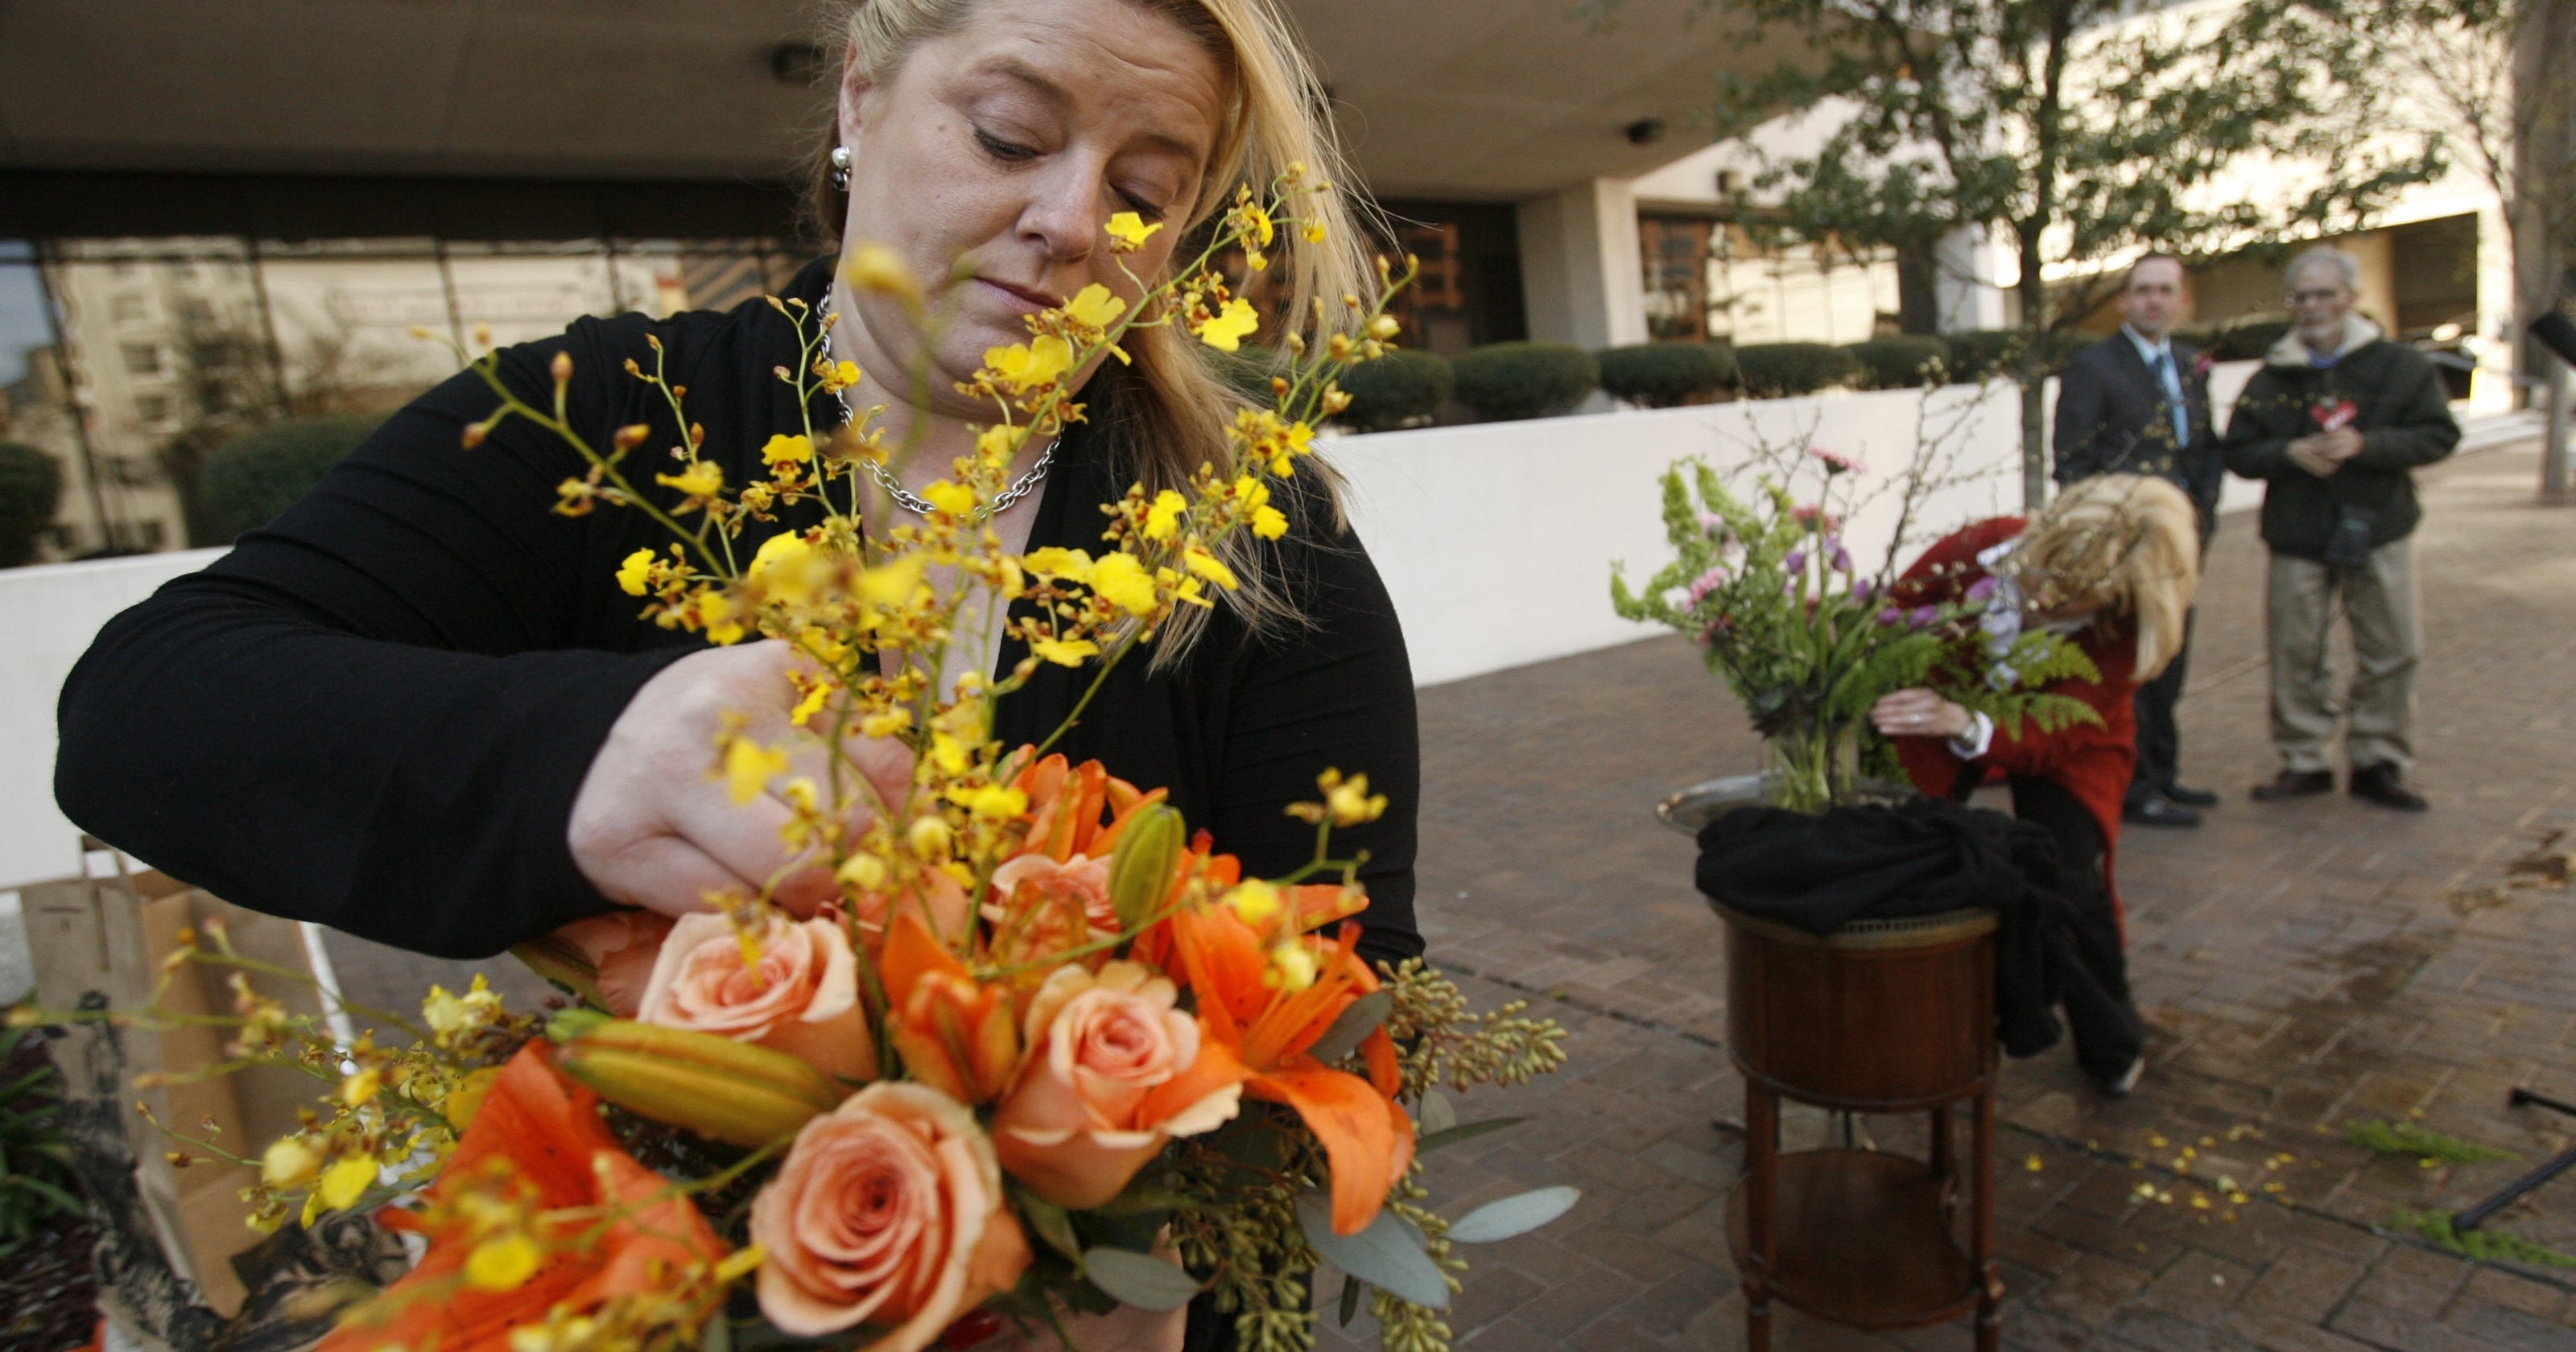 Louisianas Occupational Licensing Requirement For Florists Is Absurd